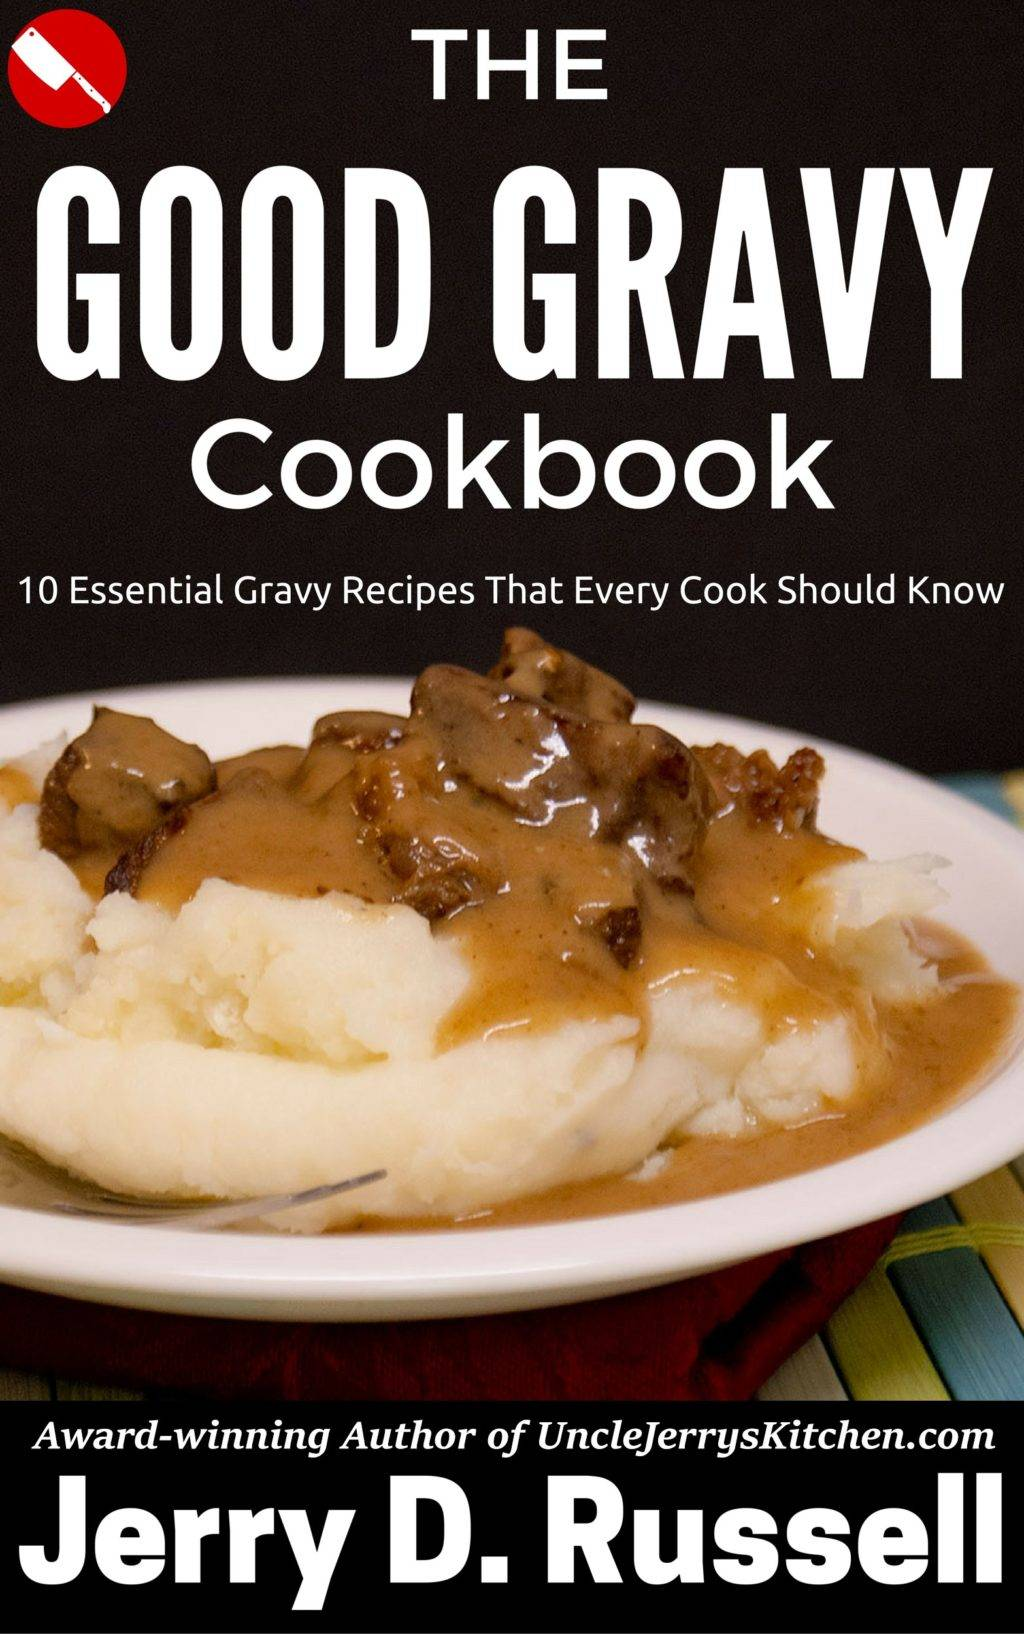 Introducing The Good Gravy Cookbook : 10 Essential Recipes Every Cook Should Know (Or, I wrote a book!)